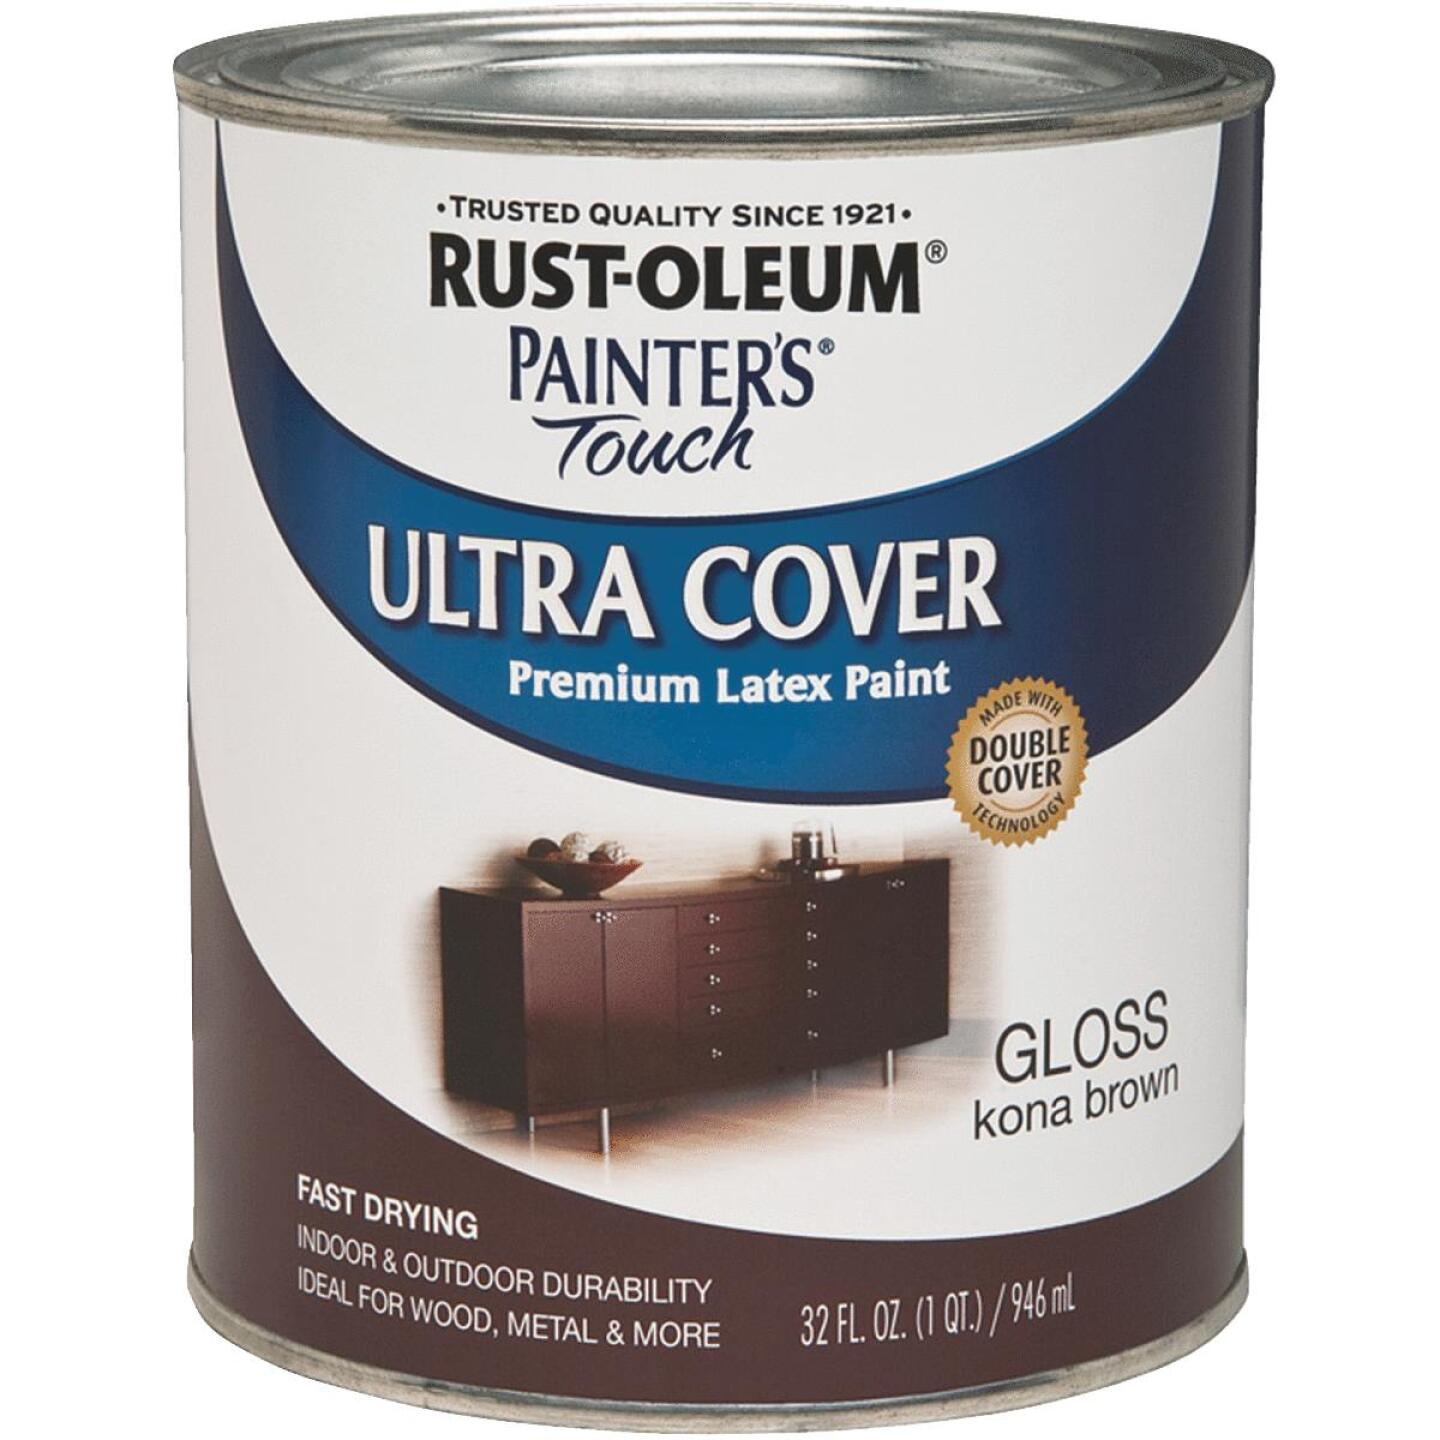 Rust-Oleum Painter's Touch 2X Ultra Cover Premium Latex Paint, Kona Brown, 1 Qt. Image 1